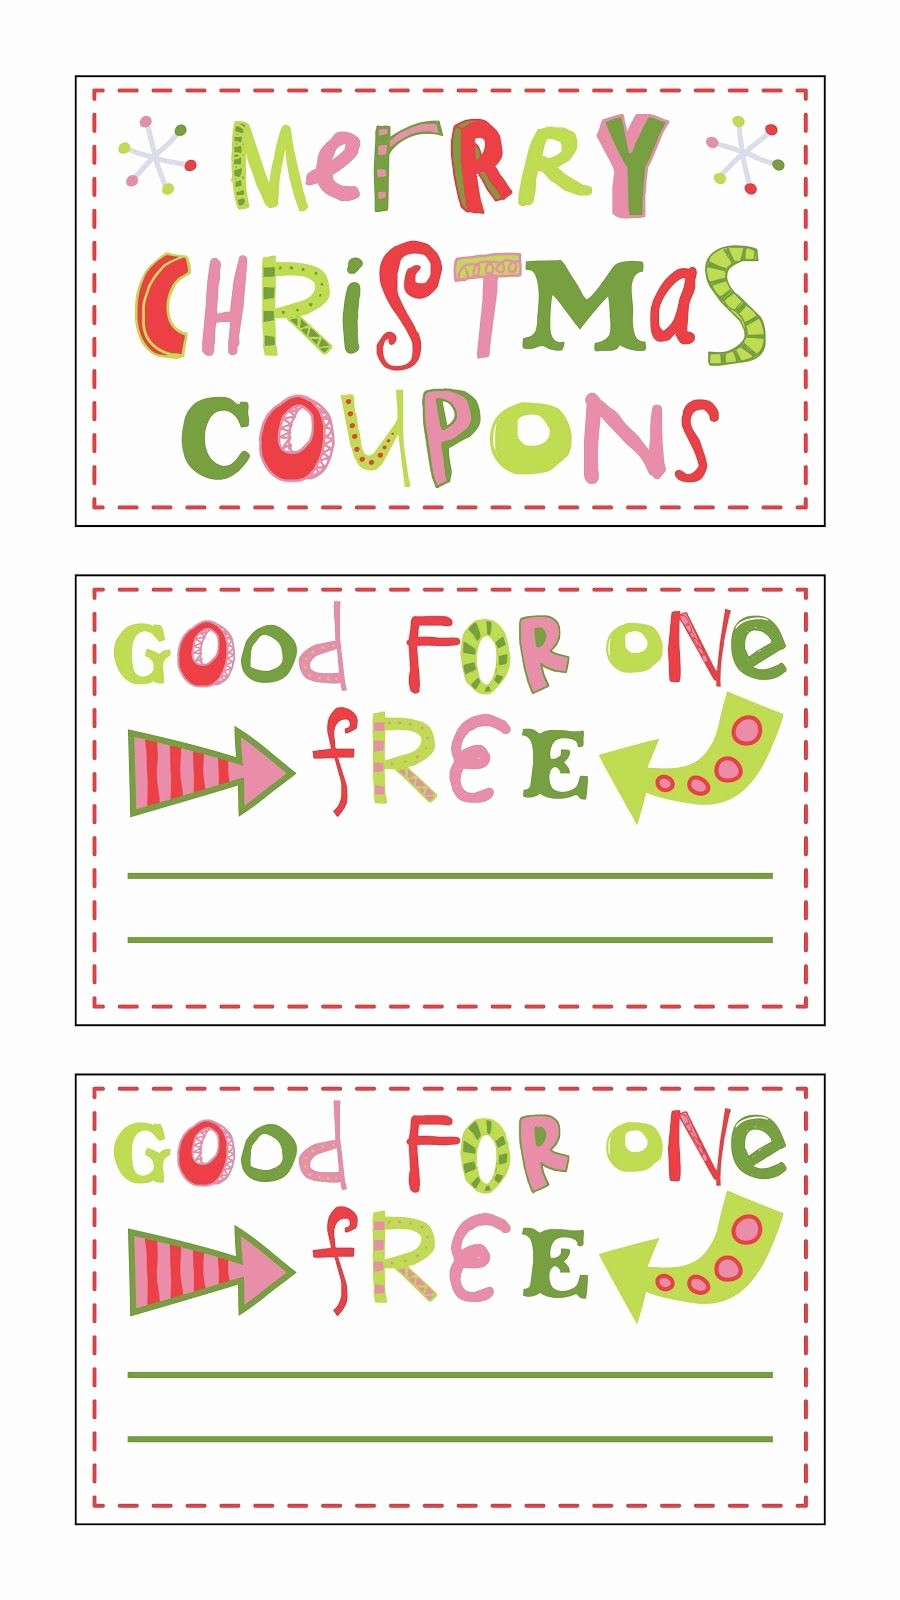 Printable Gift Coupon Templates Free Beautiful Free Printable Christmas Coupons Fontaholic